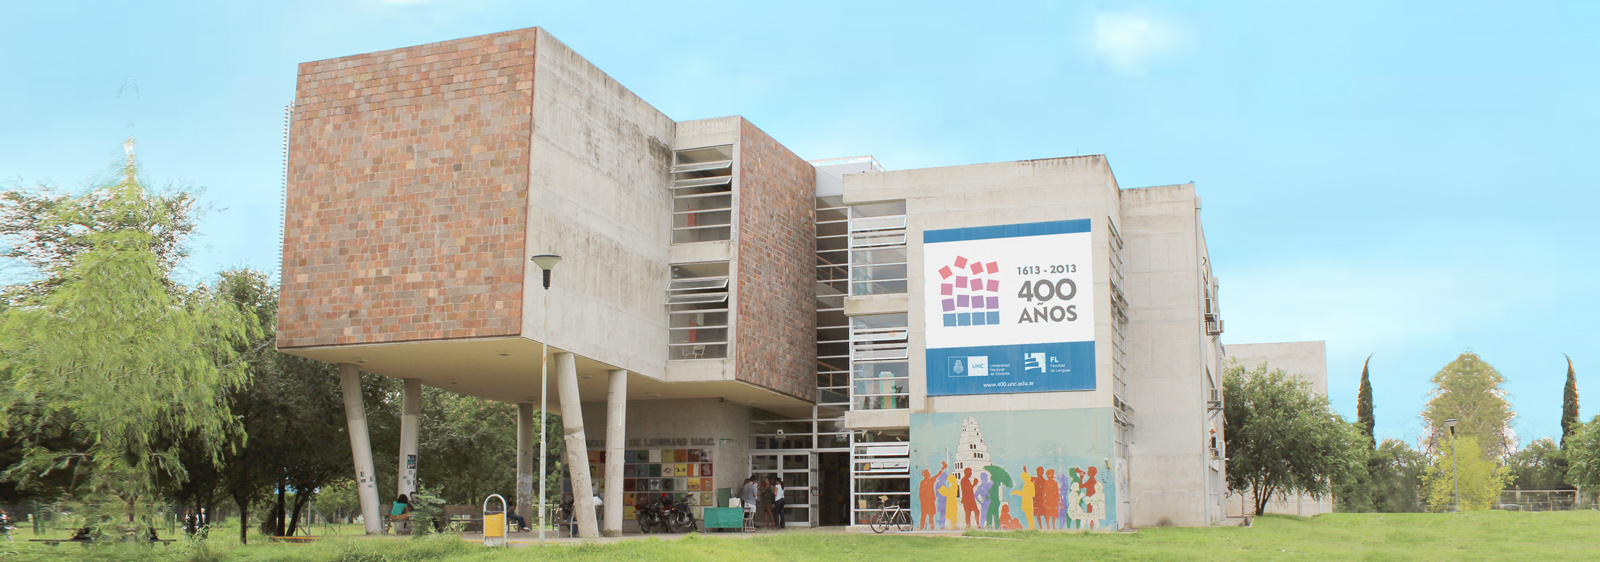 Facultad de Lenguas